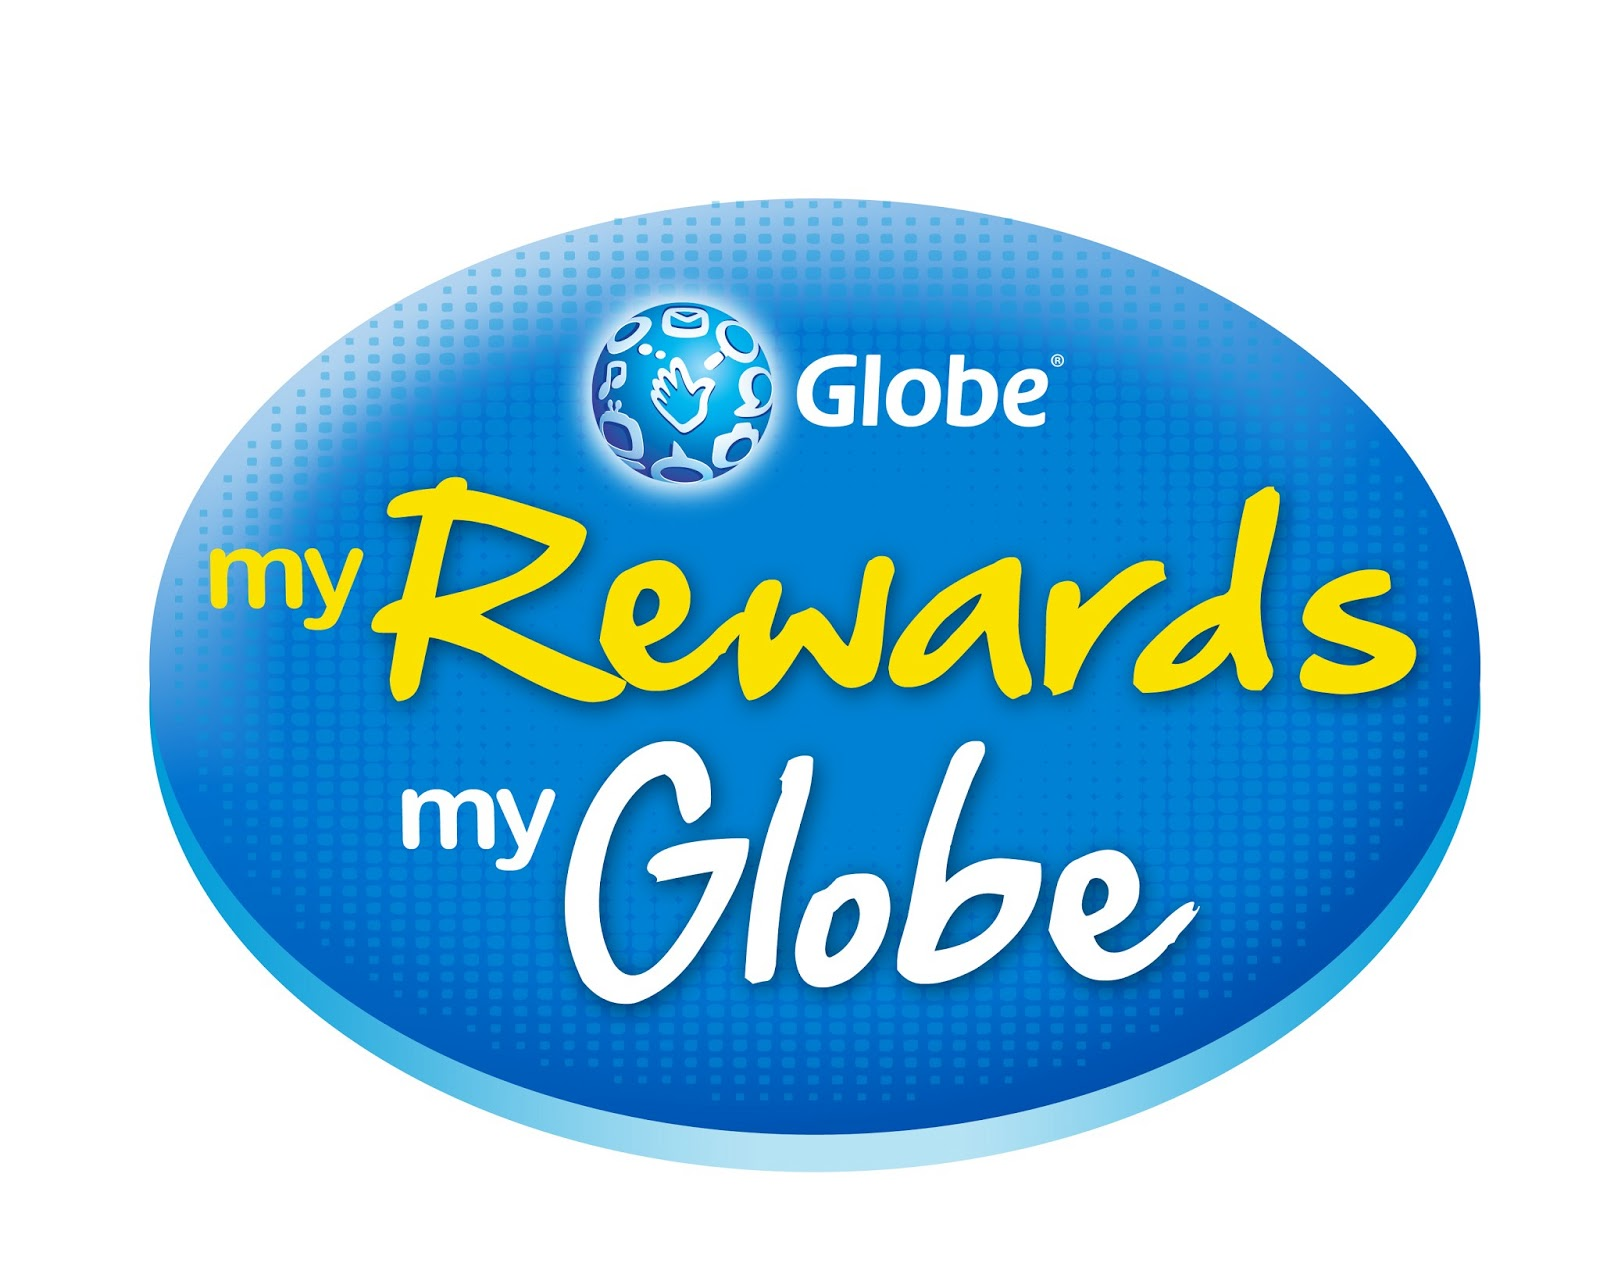 As Part Of Its Commitment To Superior Customer Experience Globe Telecom Beefs Up Its Rewards Program With The Launch Of Its Newest Rewards Offer That Gives